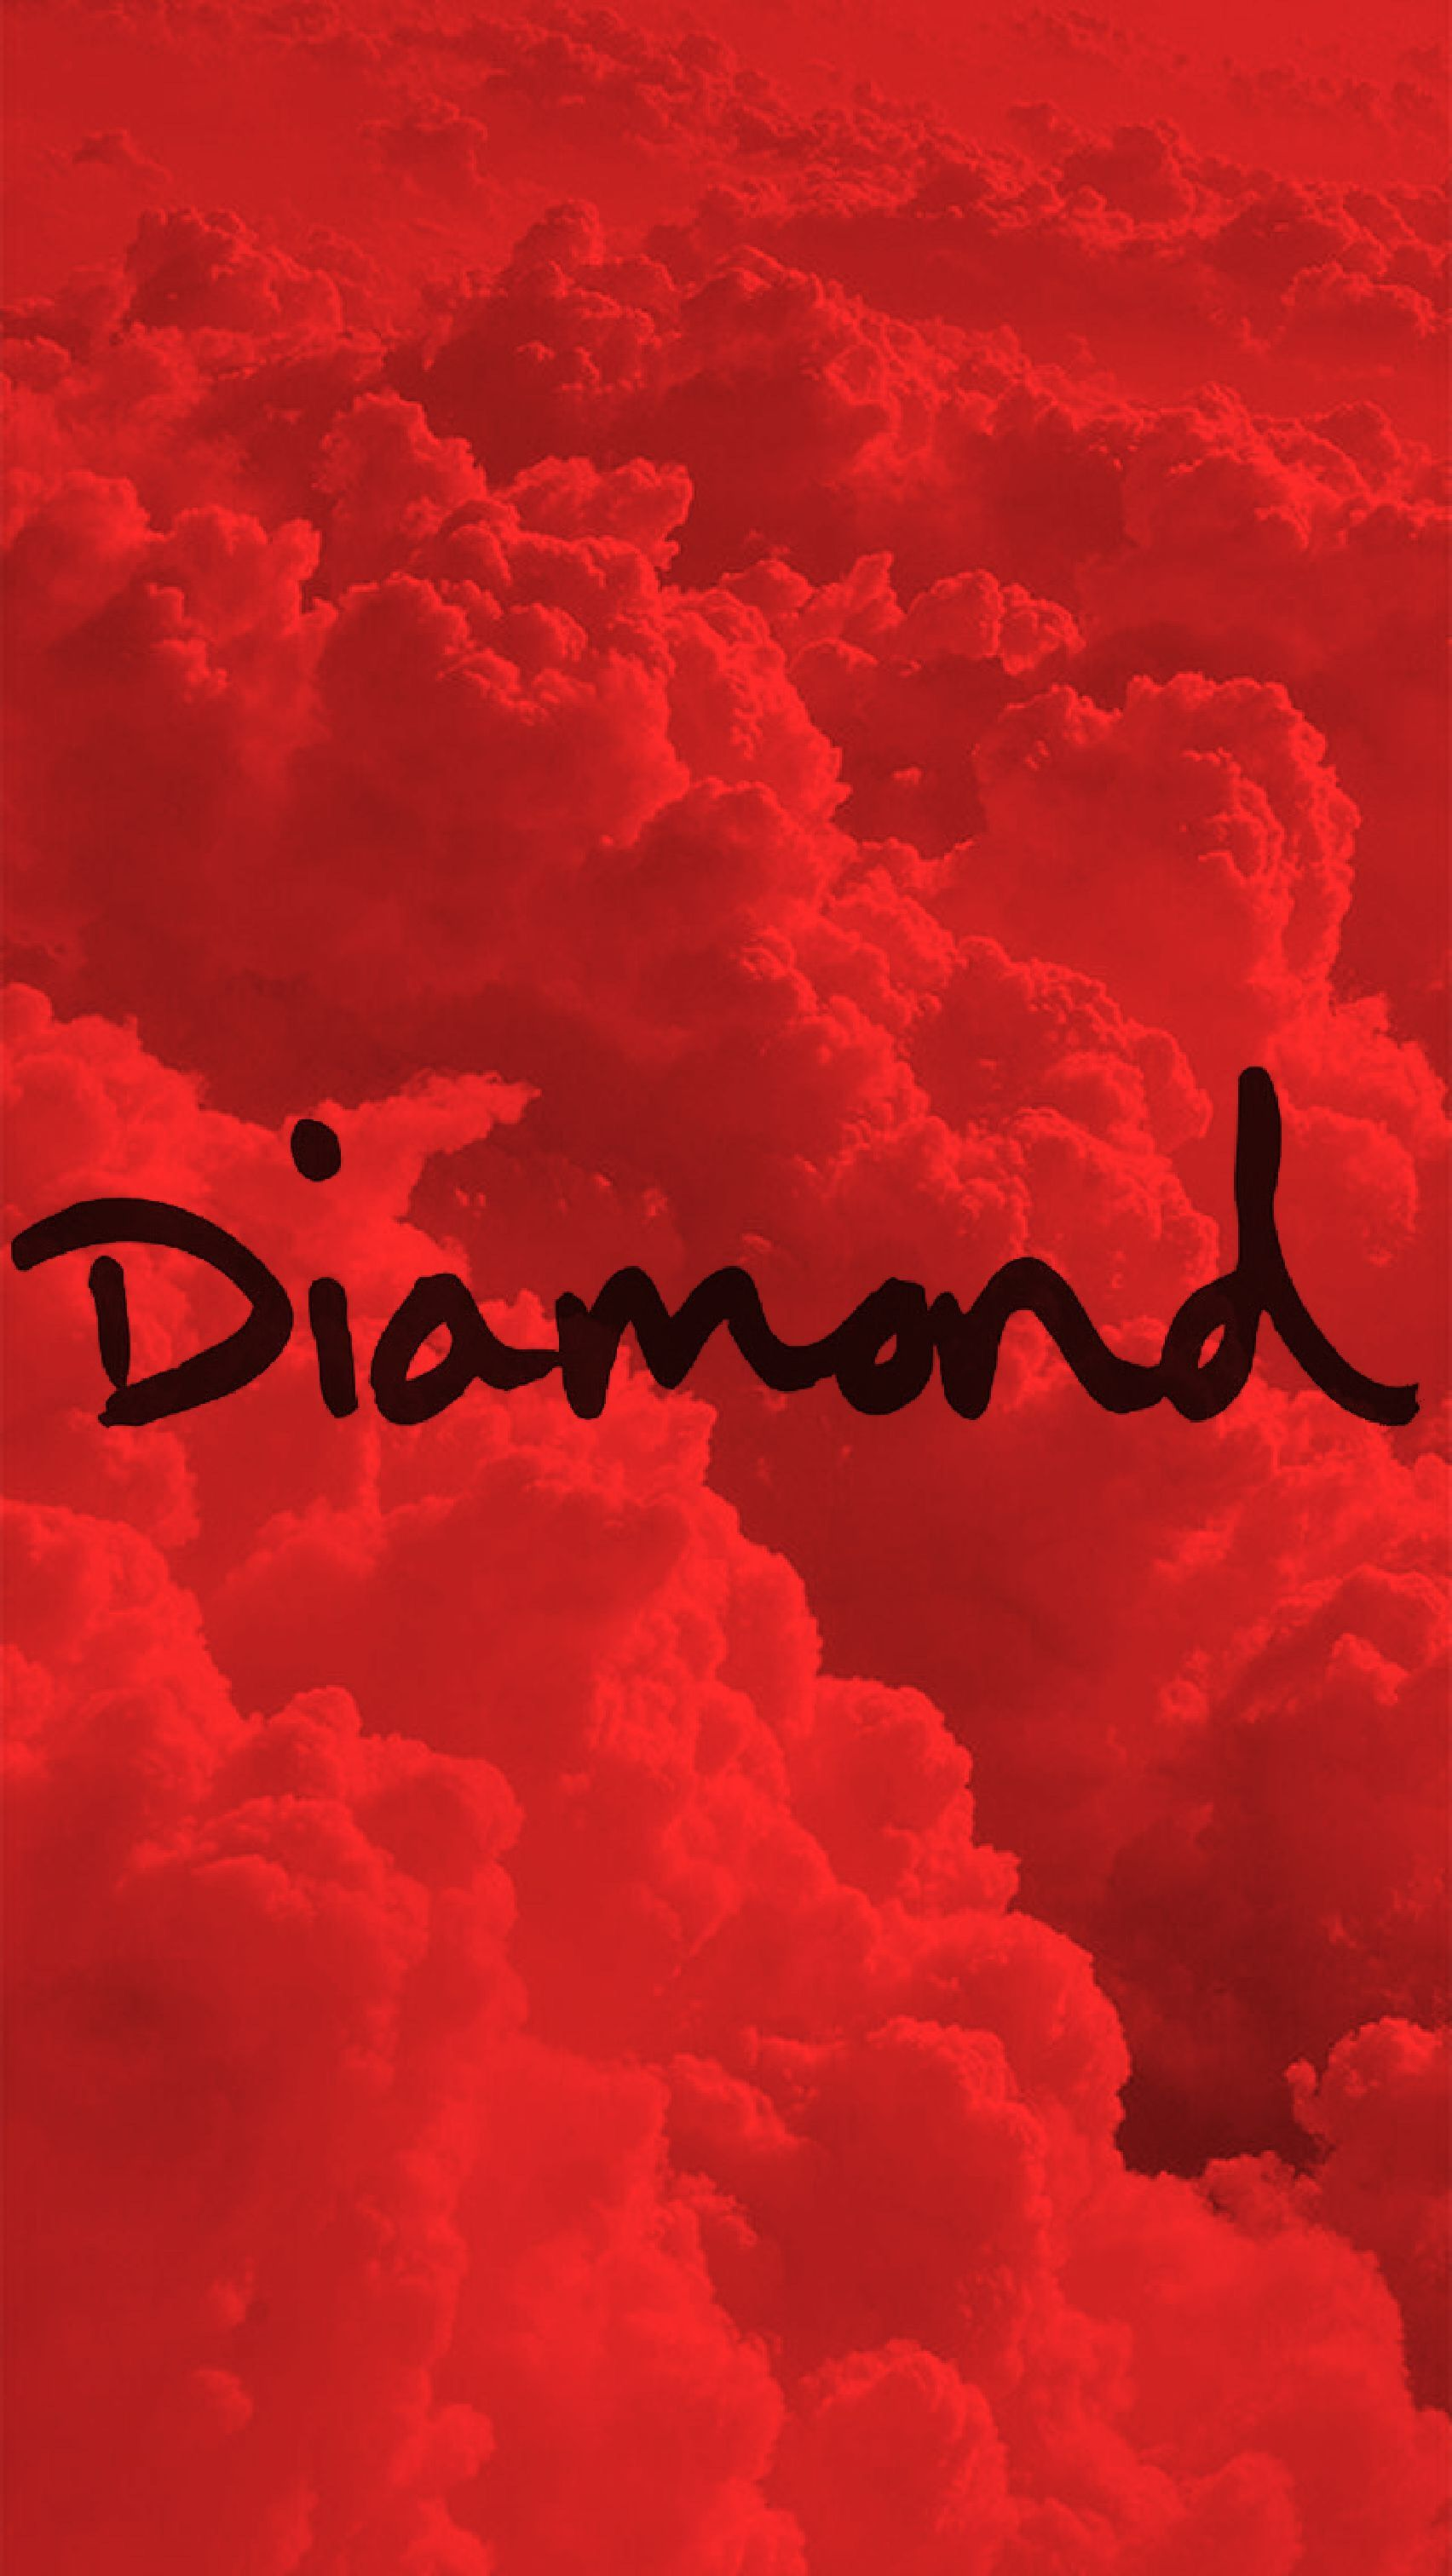 Liftedmiles Xist Diamondsupplyco Diamond Supply Co Wallpaper